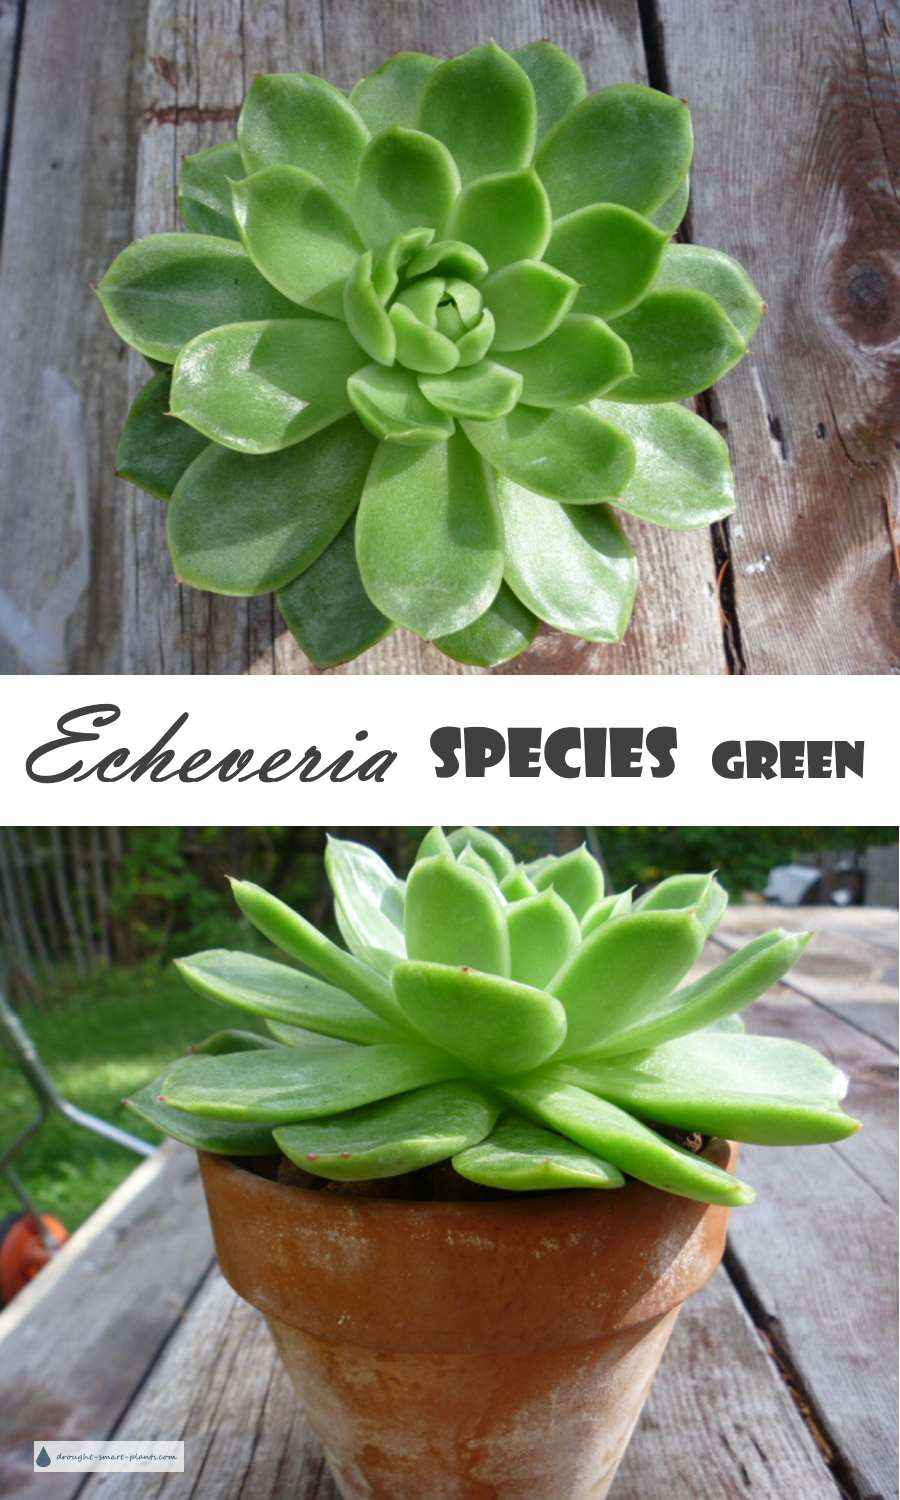 Echeveria species green